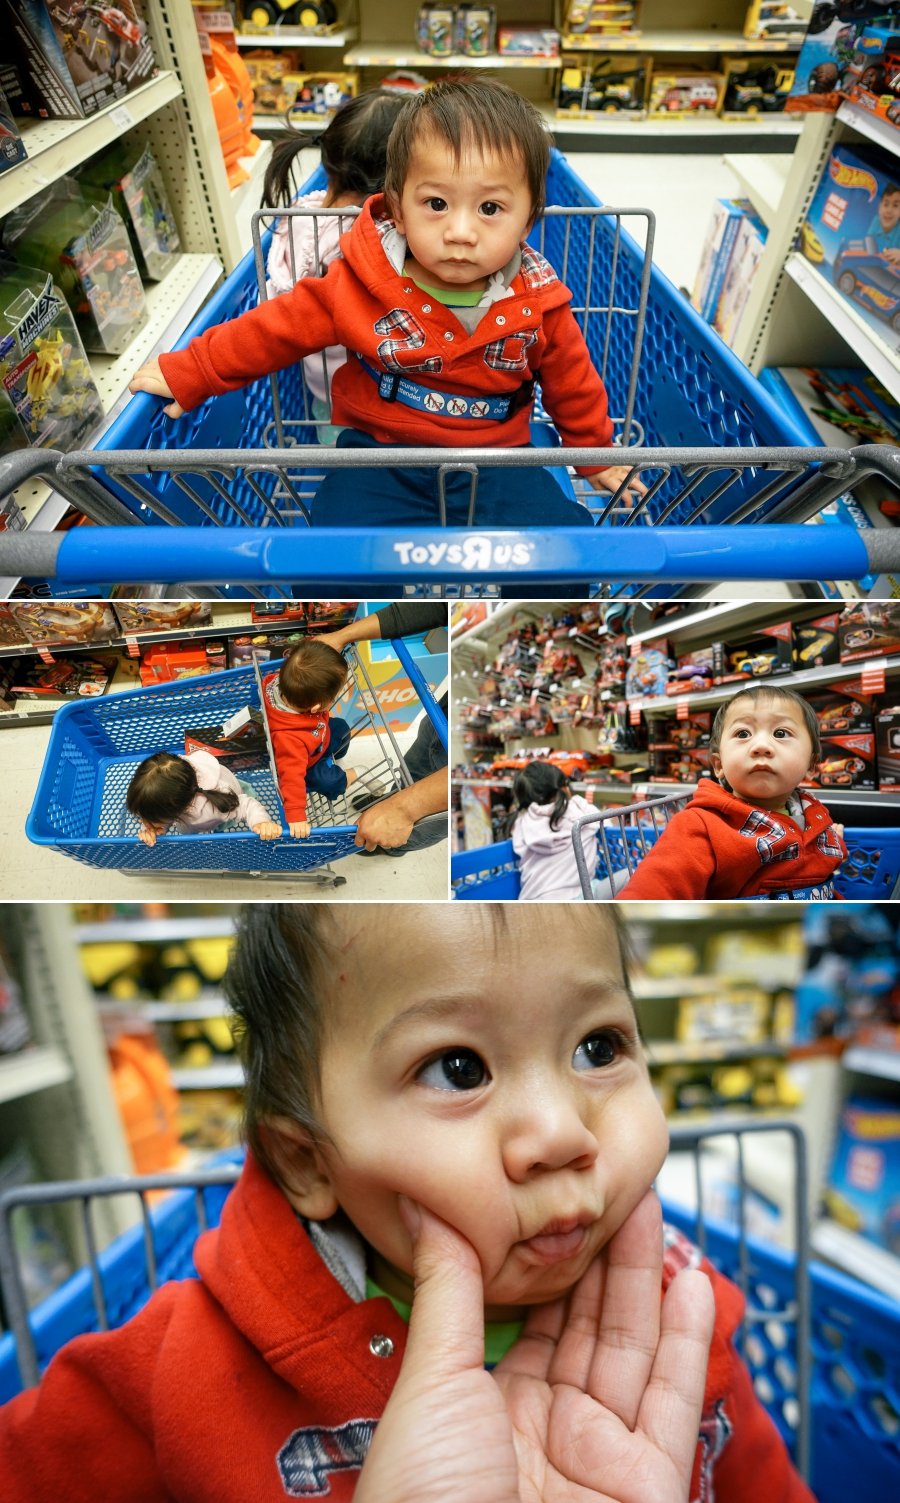 Flores Family Toys R Us - Bay Area Family Photographer 5.jpg